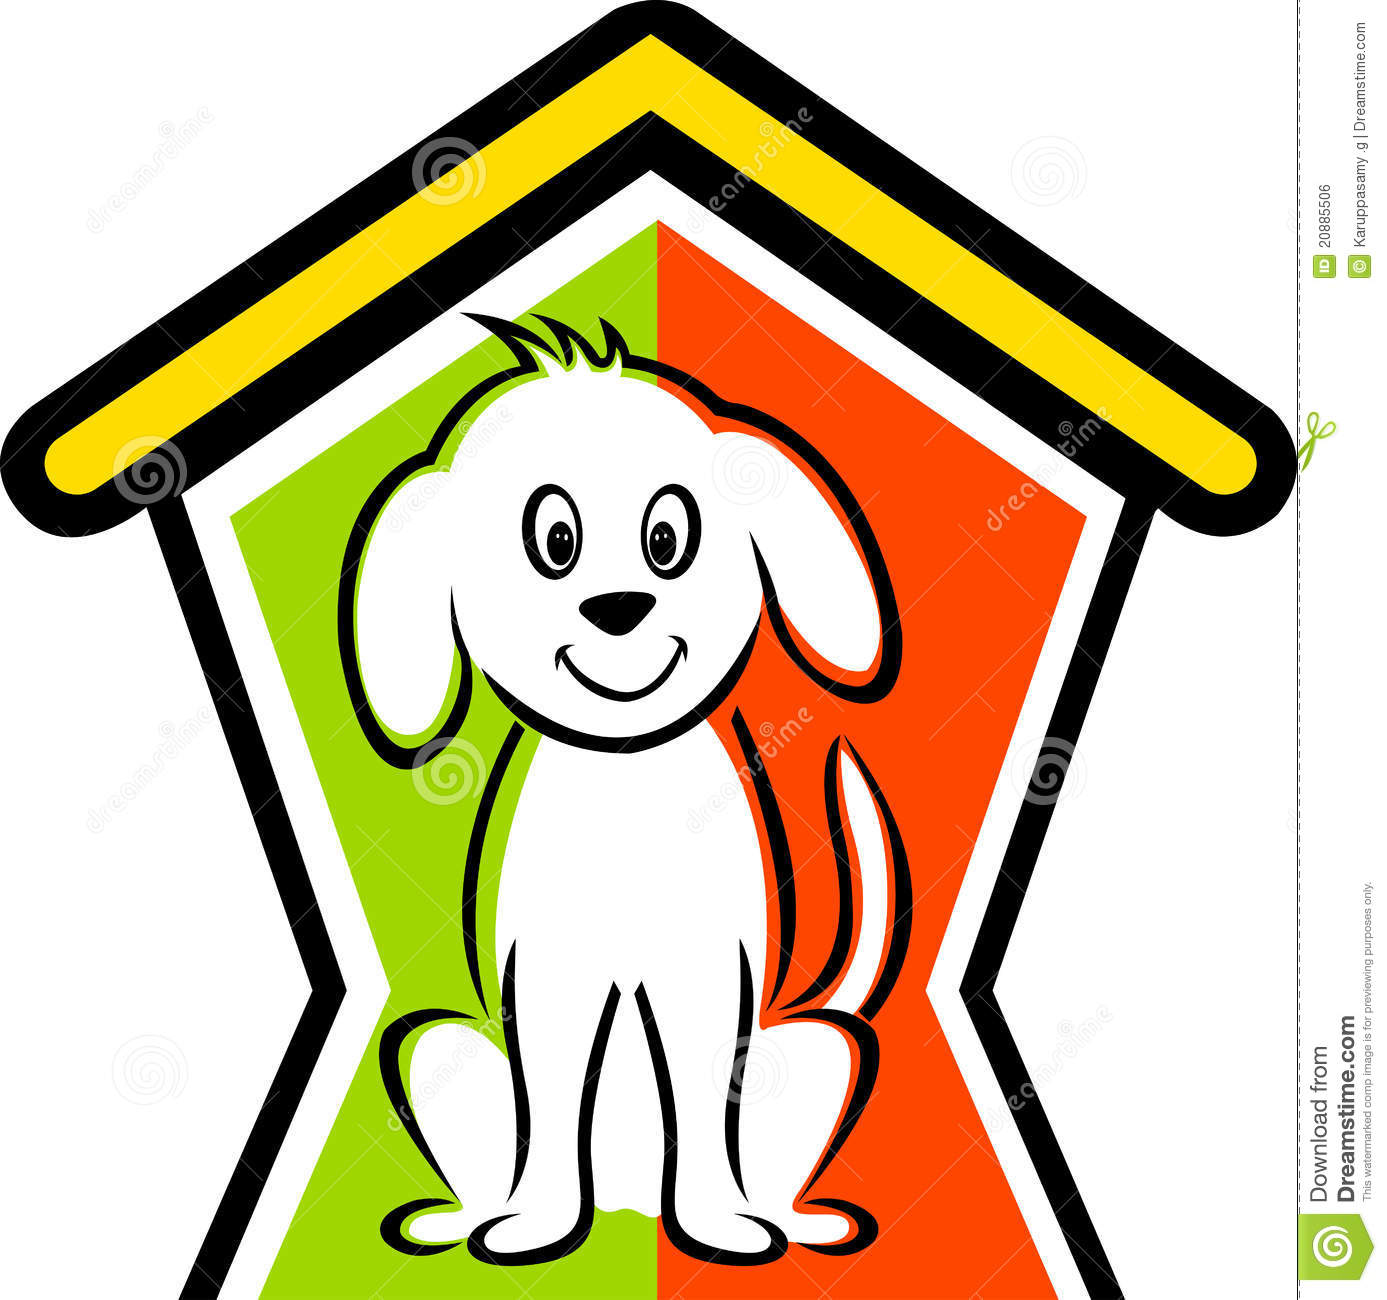 dog in doghouse clipart - photo #16